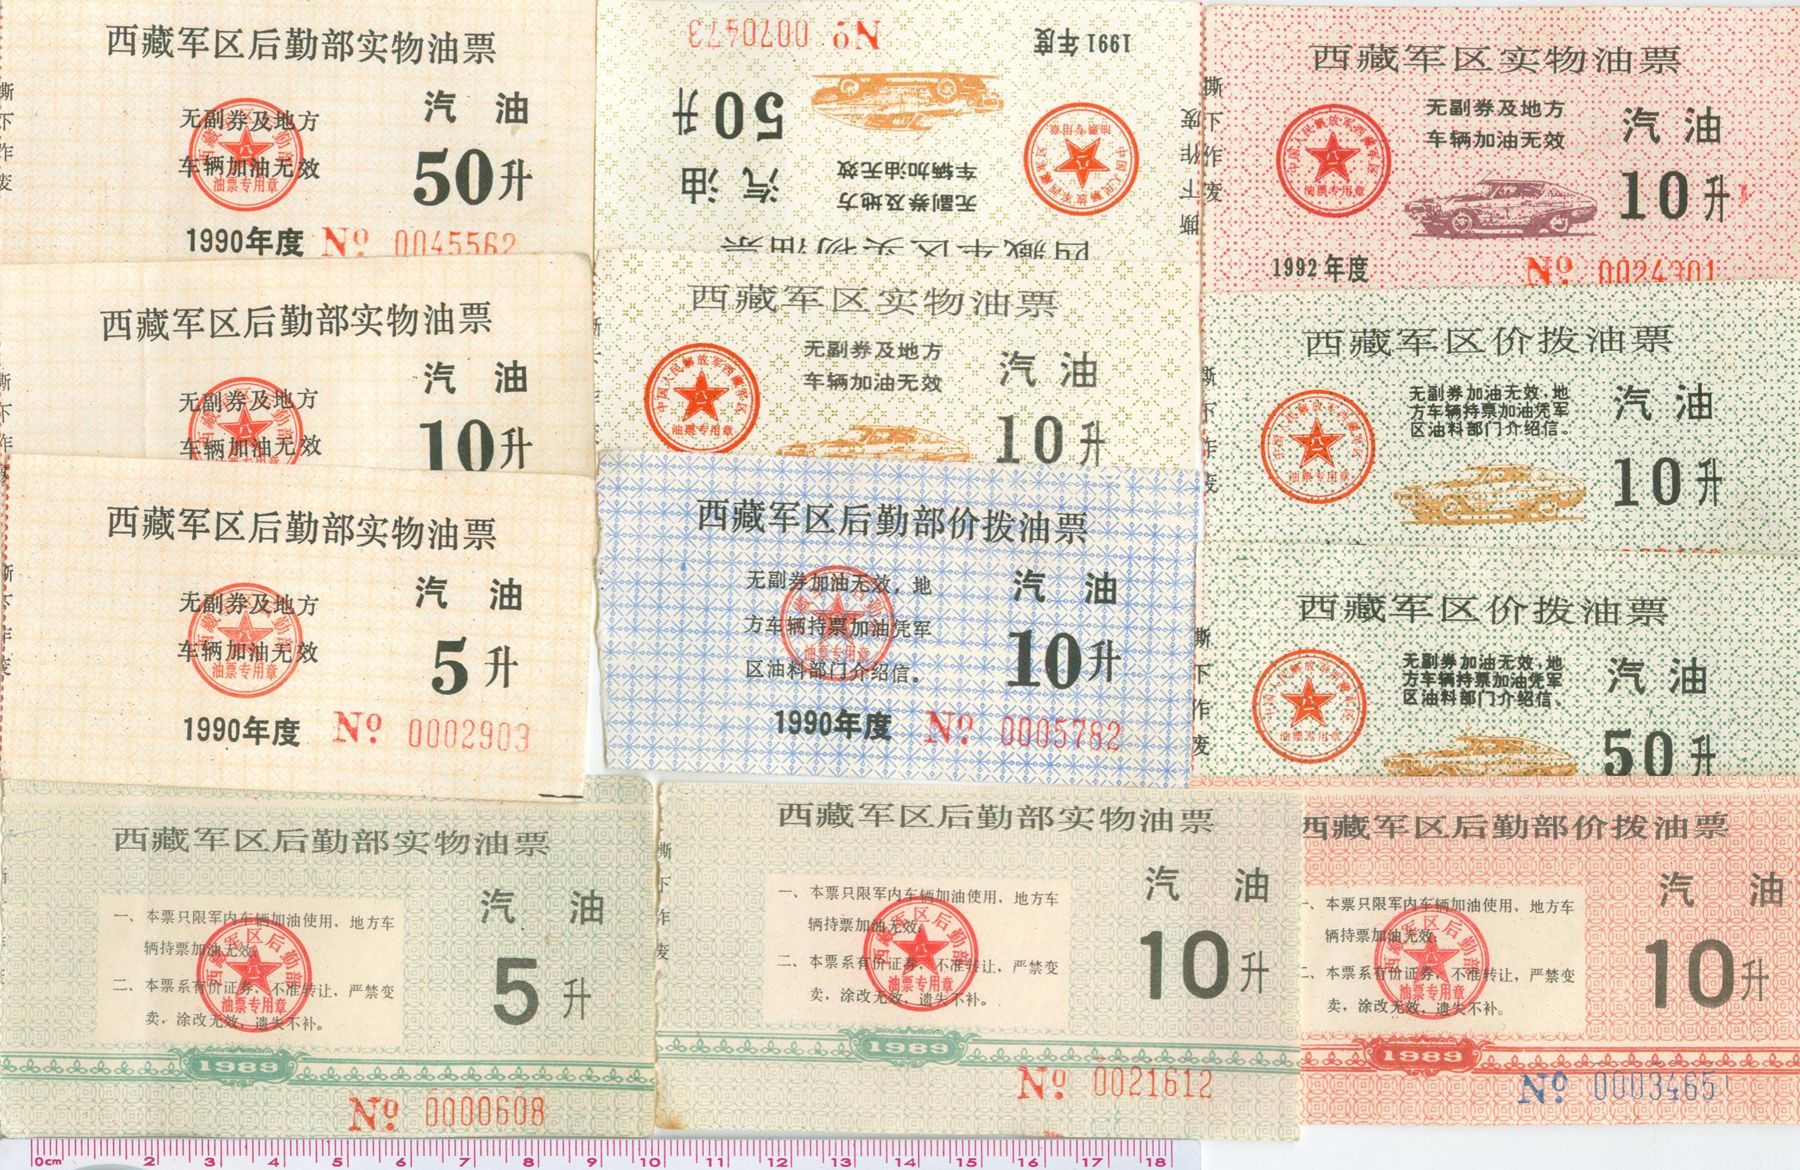 H7005, Tibet 11 Pcs Military Gasoline Ration Coupons, 1989-1992